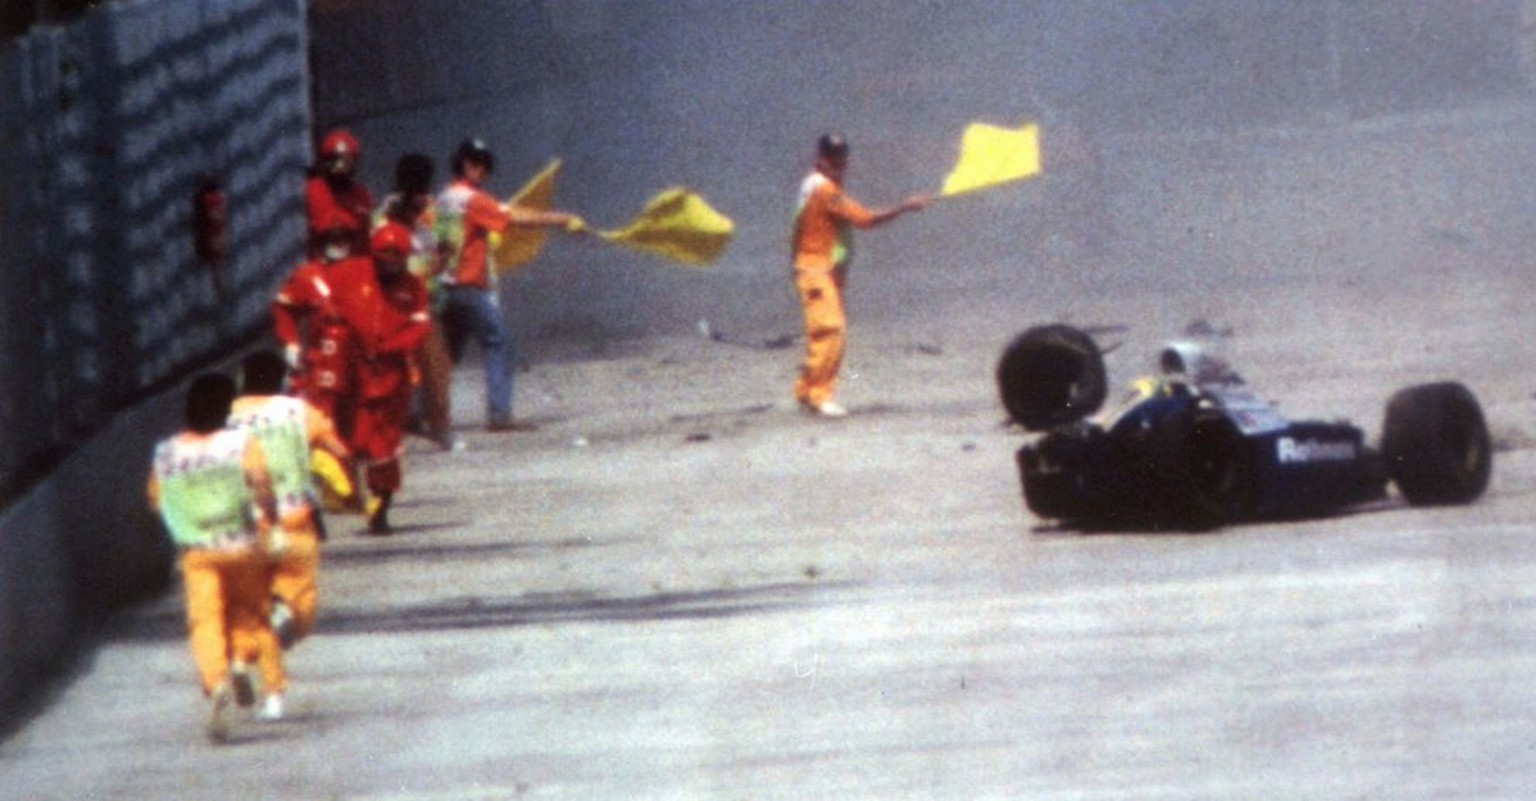 Race officials run toward Brazil's Aytron Senna after he crashed with his Williams-Renault during the San Marino F-1 Grand Prix in Imola Sunday May 1, 1994.  Senna died at a Bologna hospital later. Nearly three years after the fatal crash, six top Formula One figures, including Frank Williams, head of the successful Williams-Renault team, face manslaughter carges in a trial starting in Imola Thursday, February 20, 1997. (KEYSTONE/AP/PESCI)